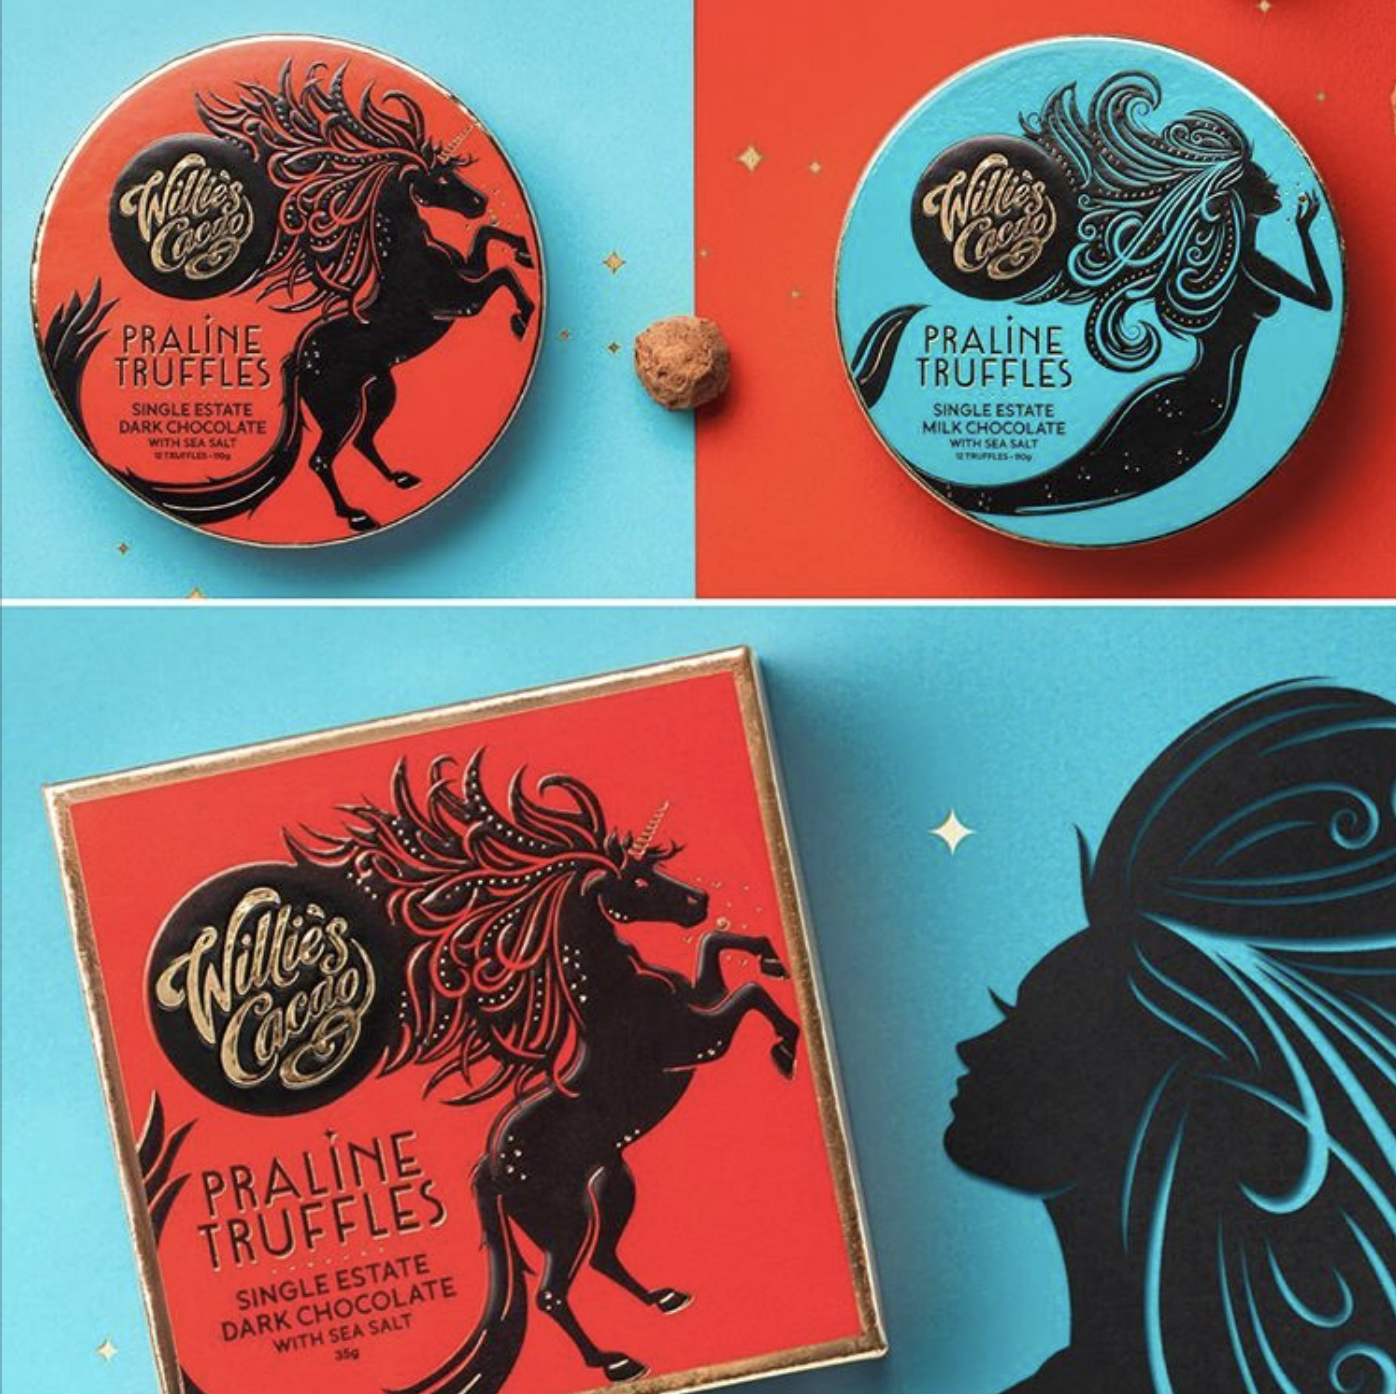 Willies Cacao (With images) Packaging inspiration, Cacao